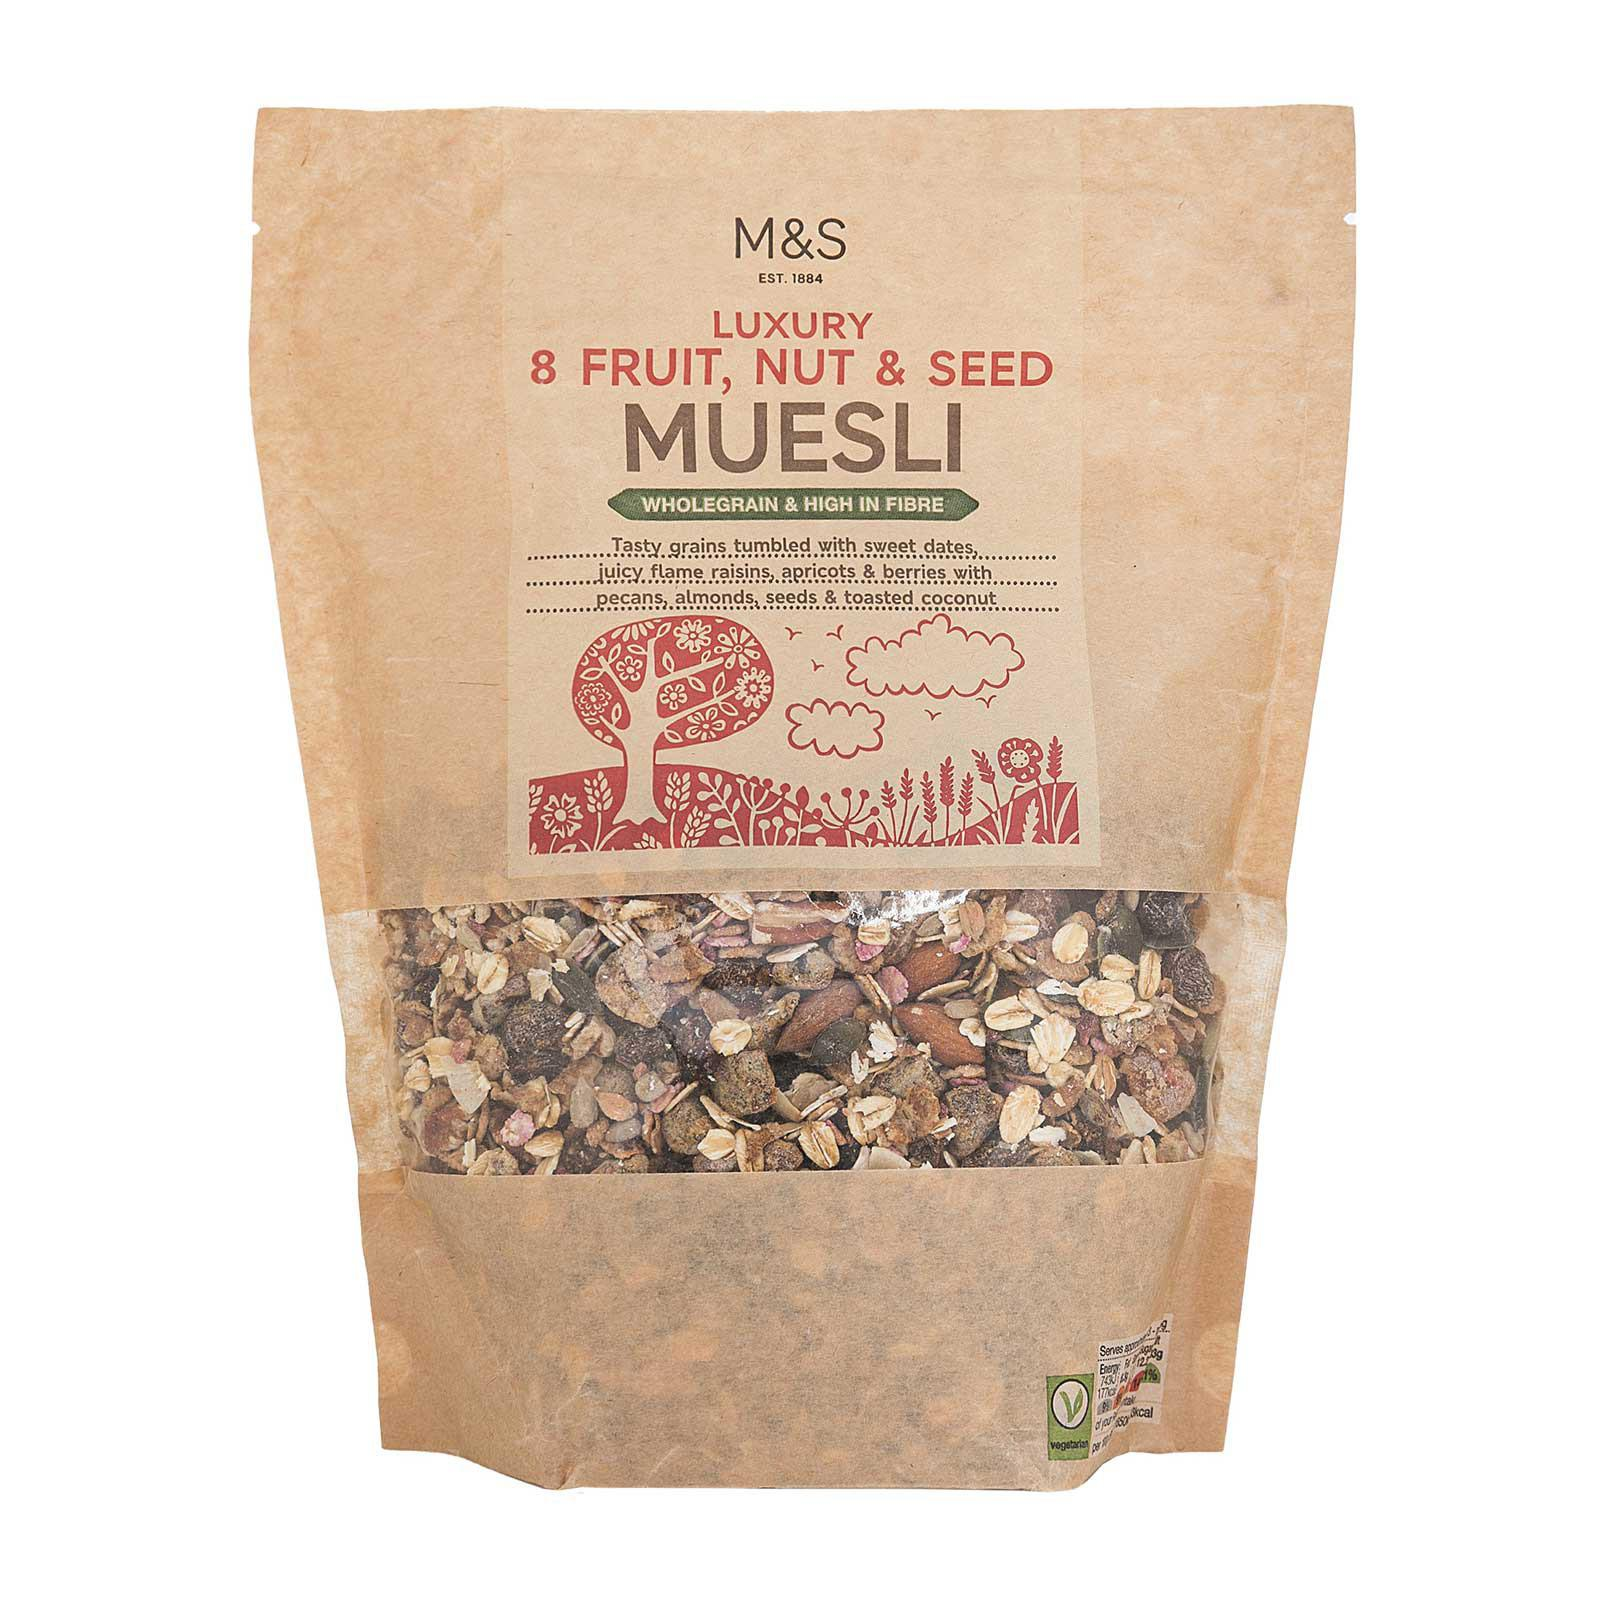 Marks & Spencer Luxury 8 Fruit Nut and Seed Muesli